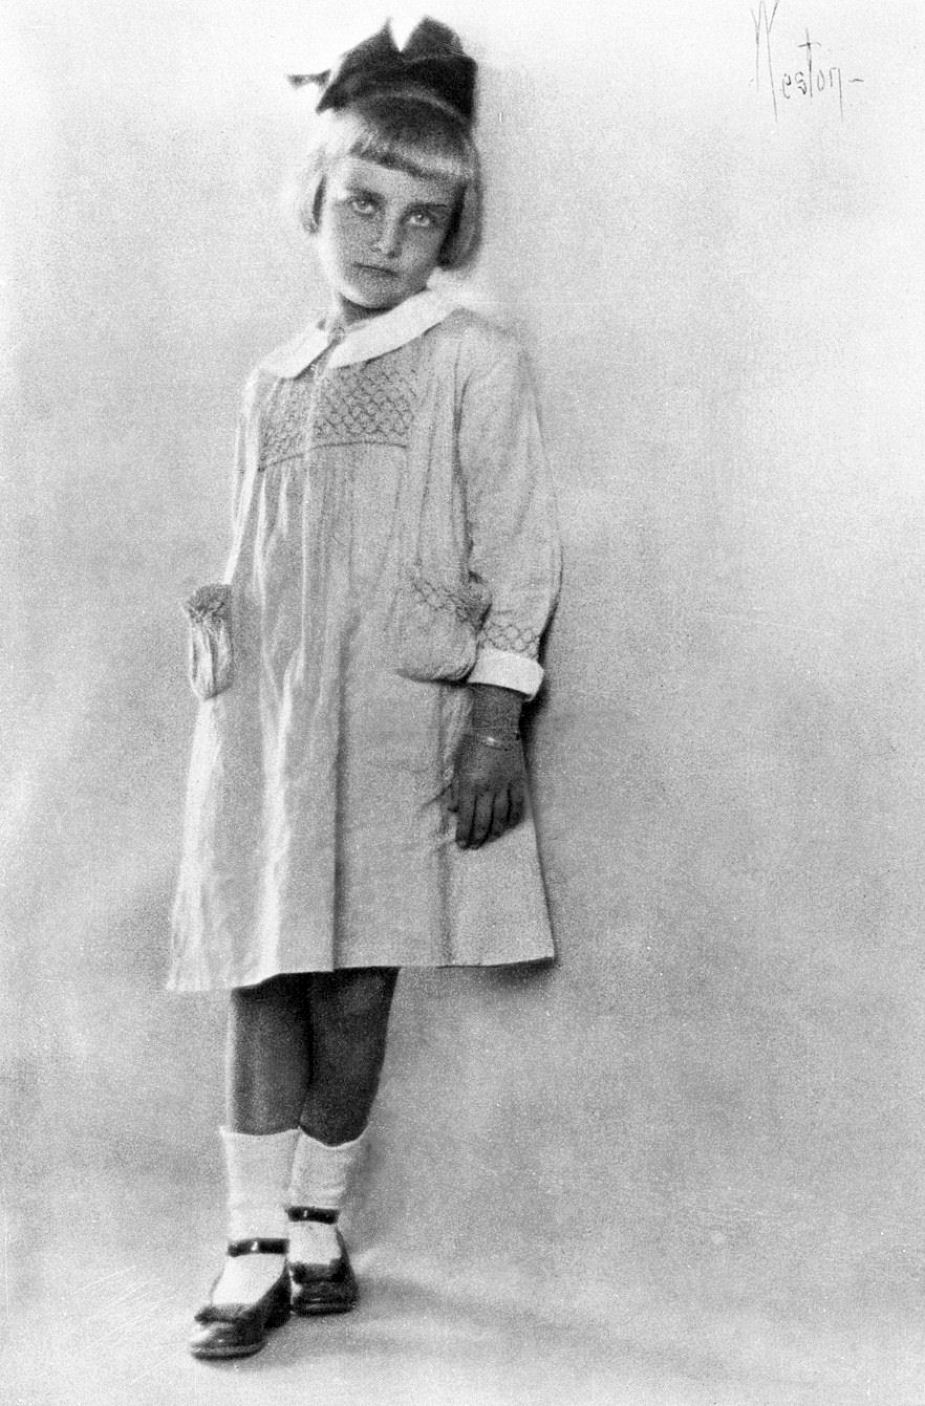 carole lombard as child 02a